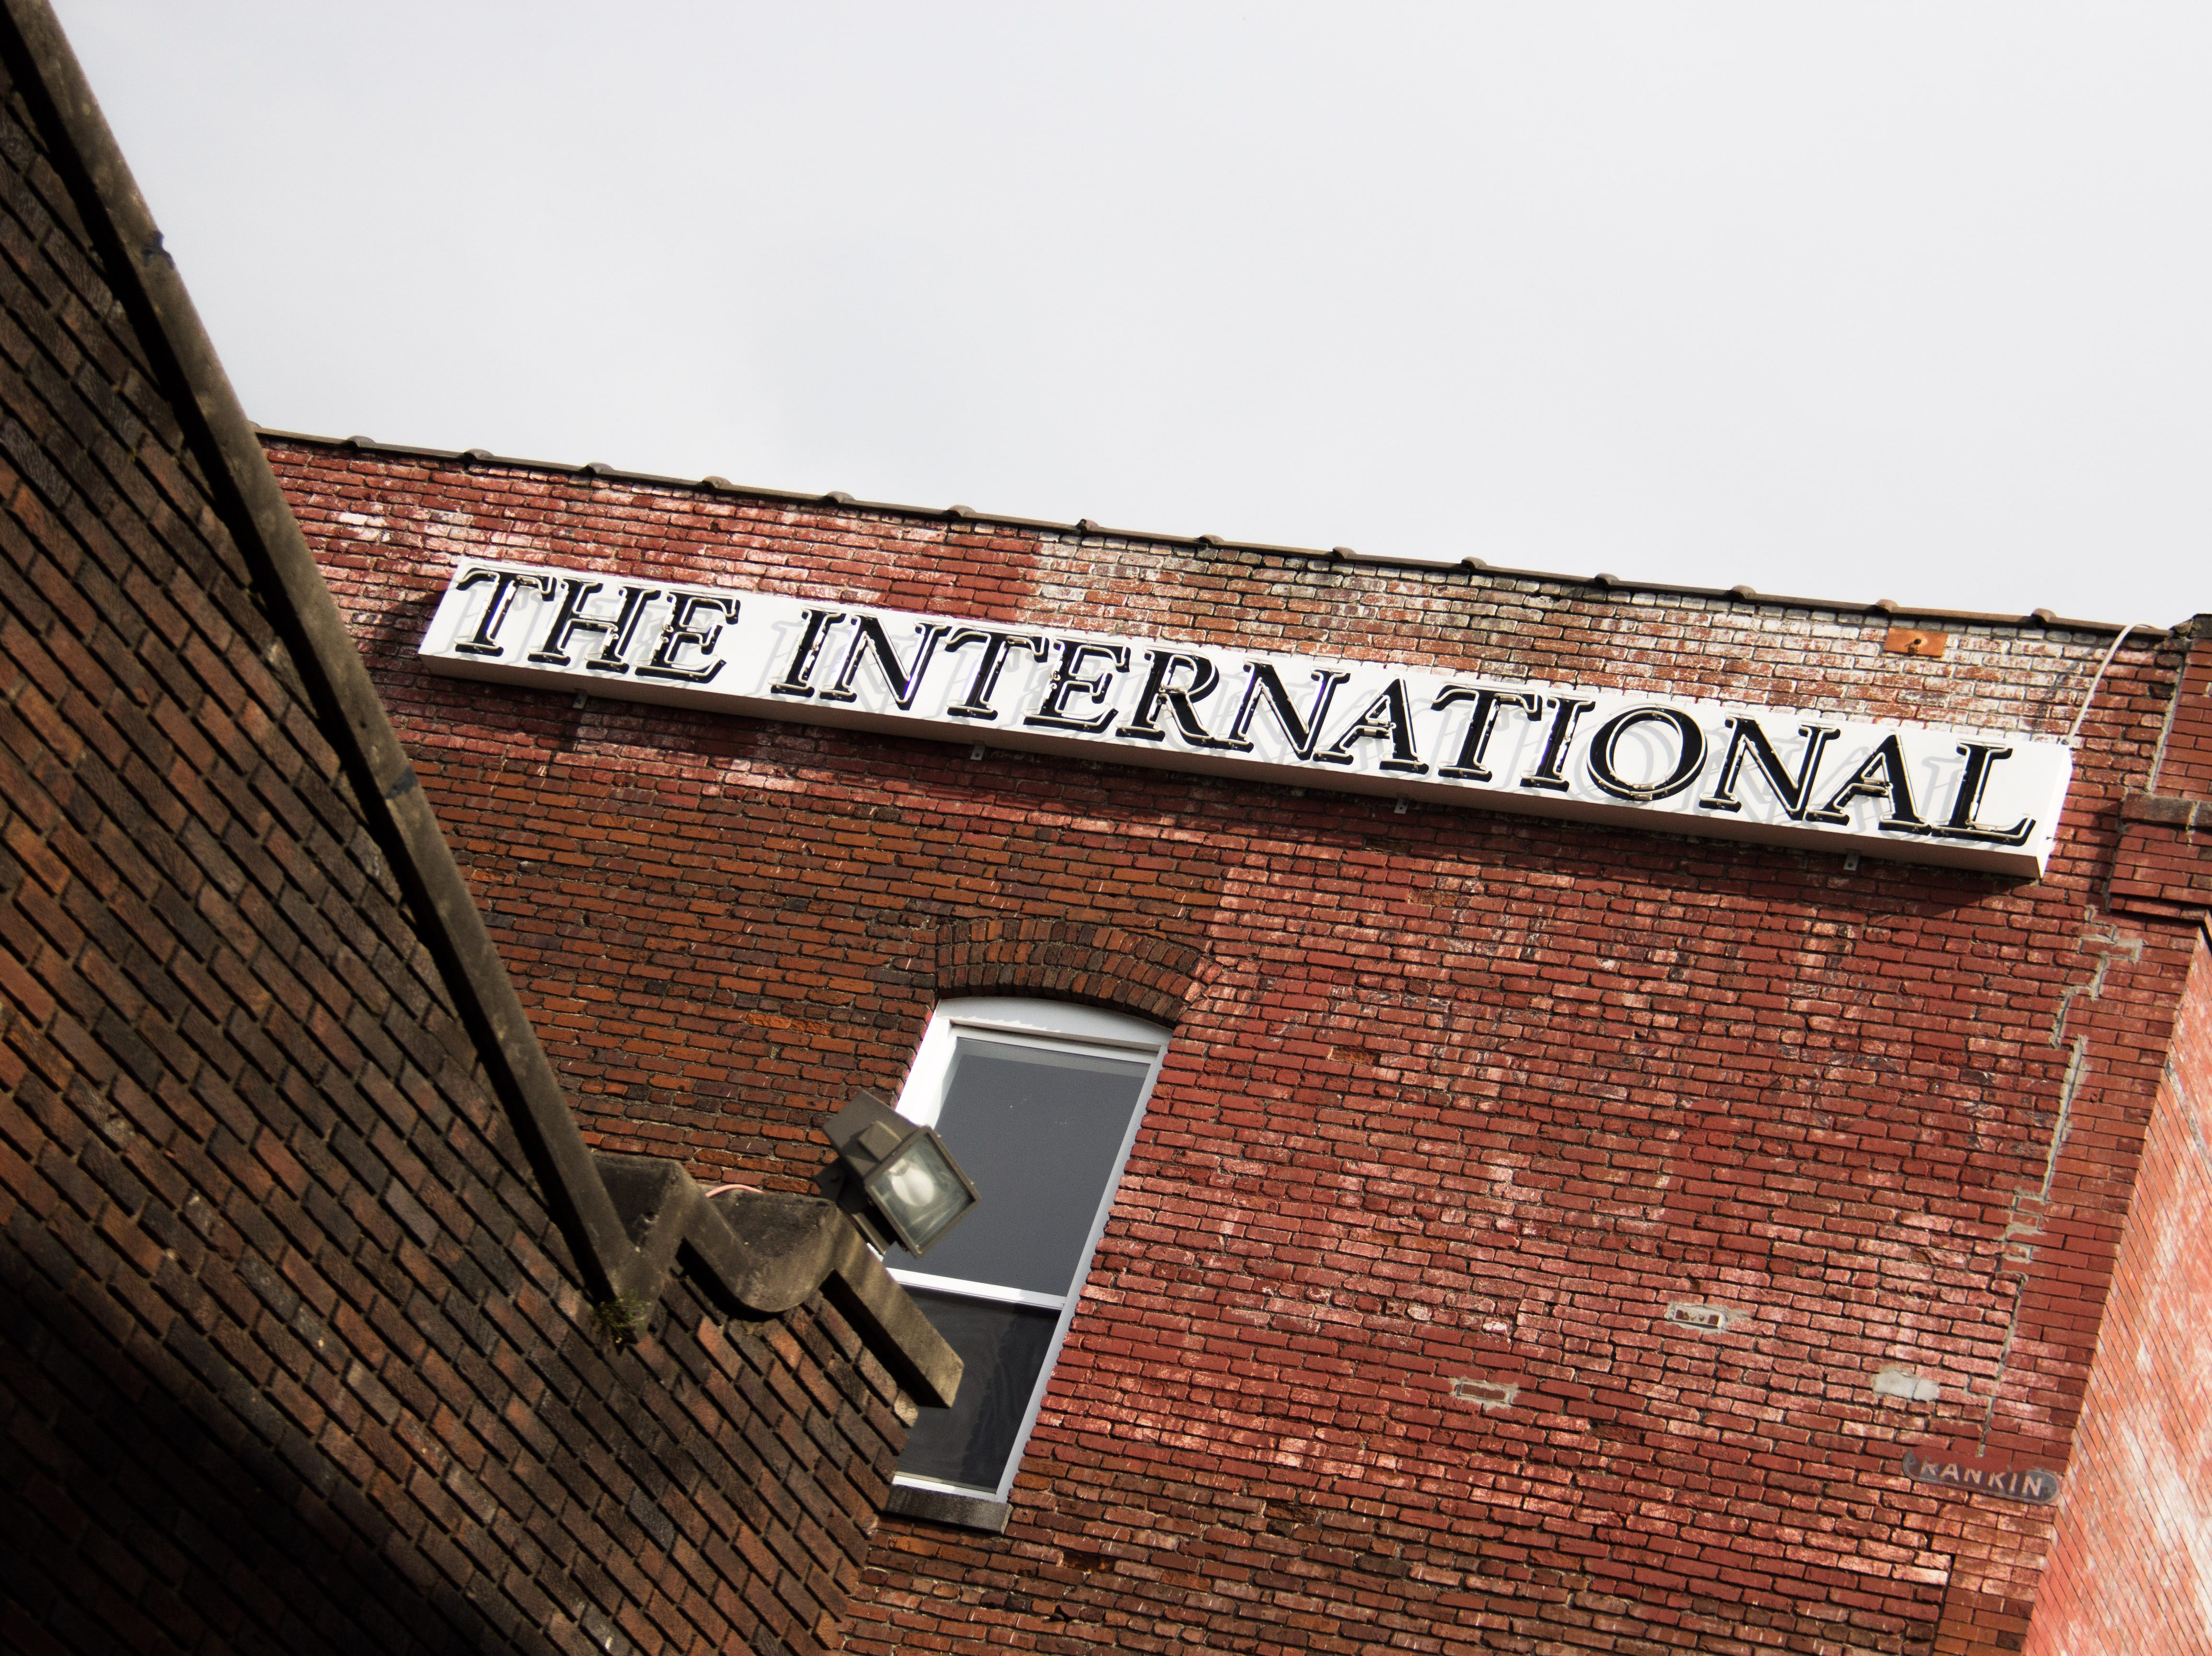 A sign for The International hangs on the side of The Concourse music venue, one of three buildings on the property.